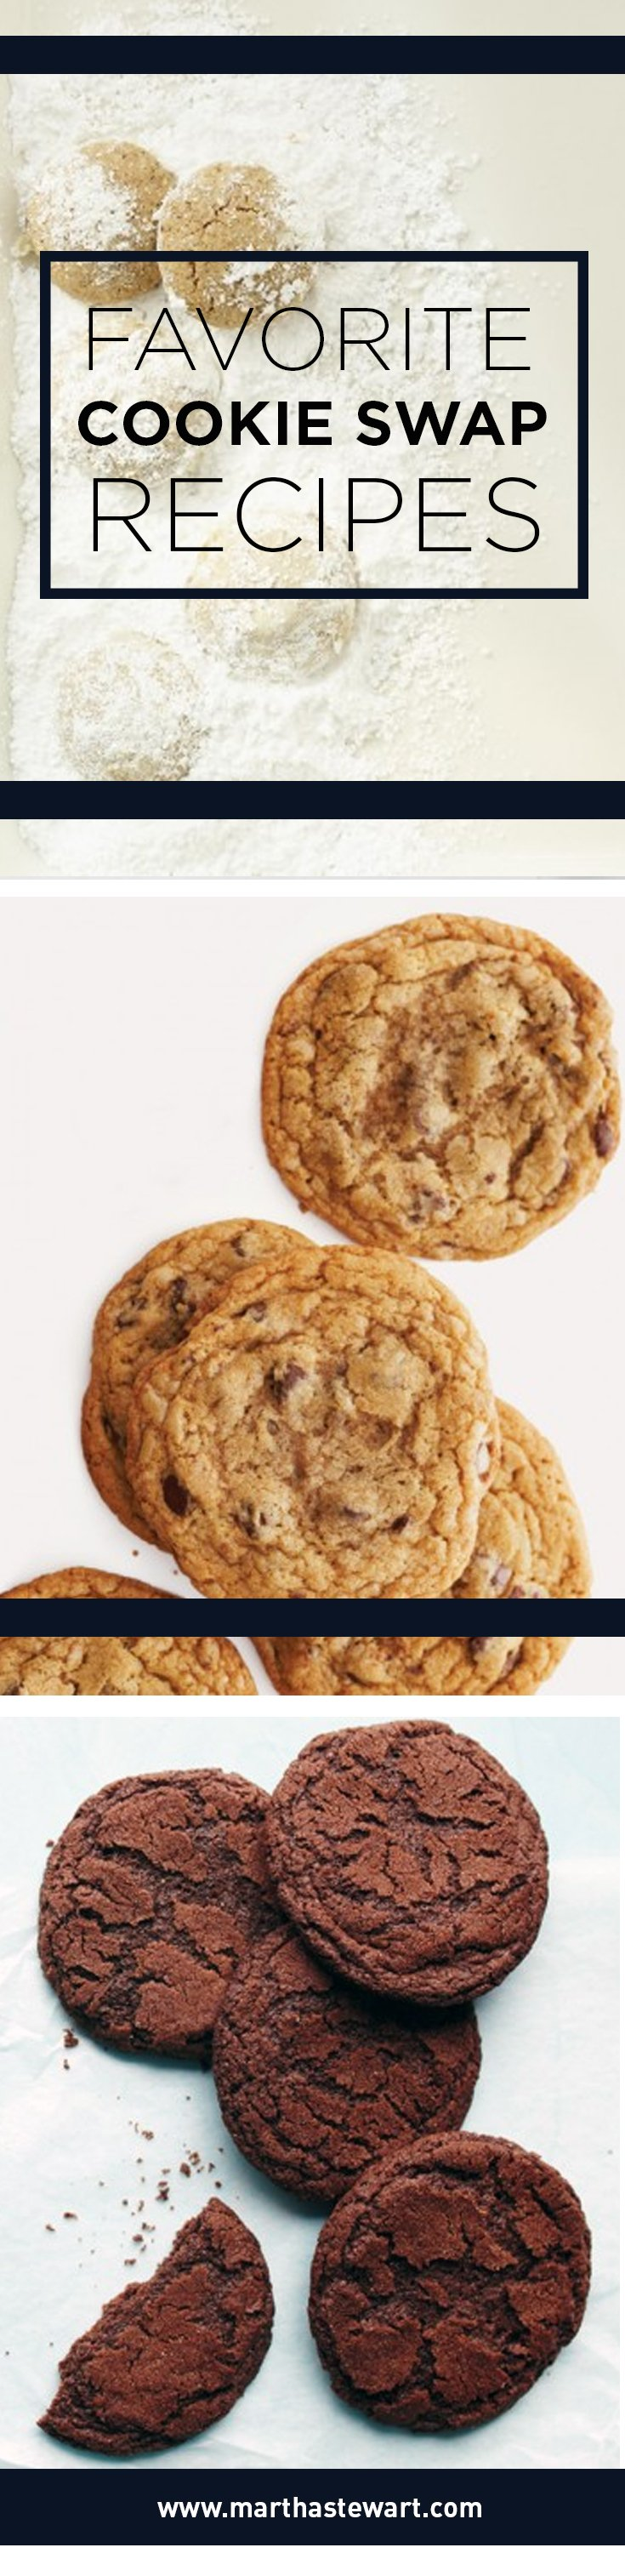 Favorite Cookie Swap Recipes Food recipes, Holiday